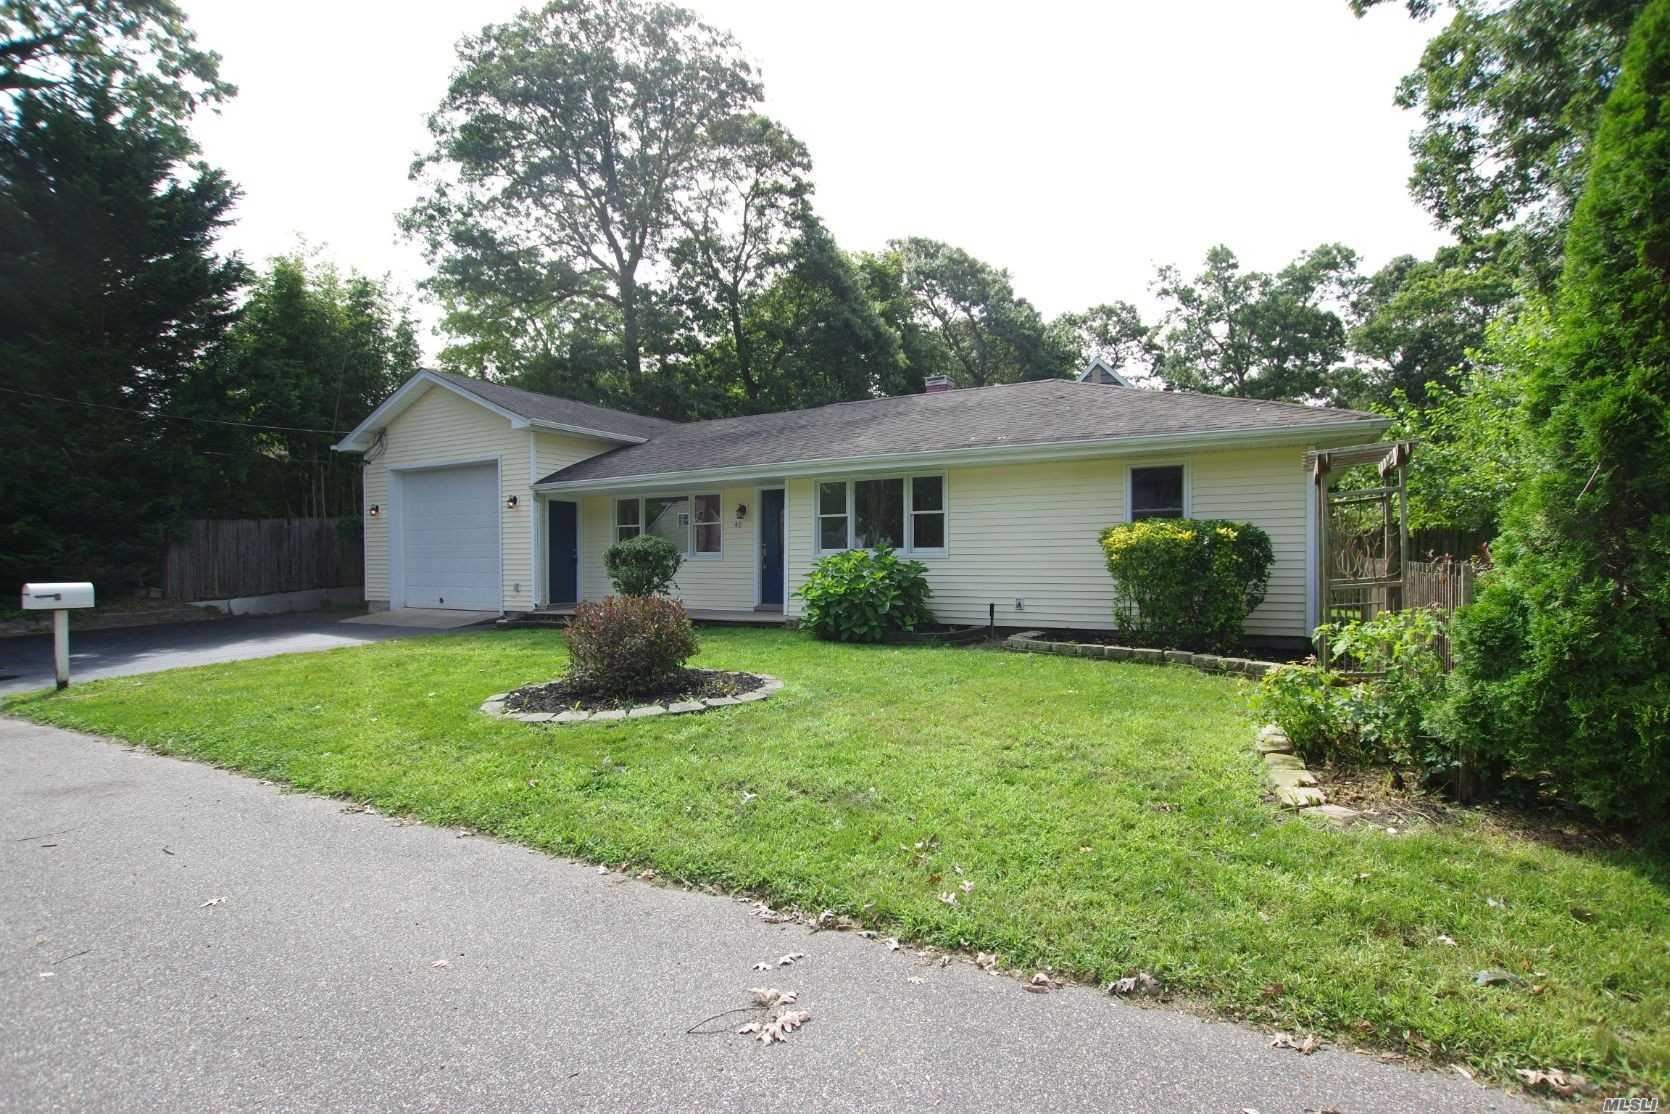 40 Puritan Ave, East Patchogue, NY 11772 - MLS#: 3241709